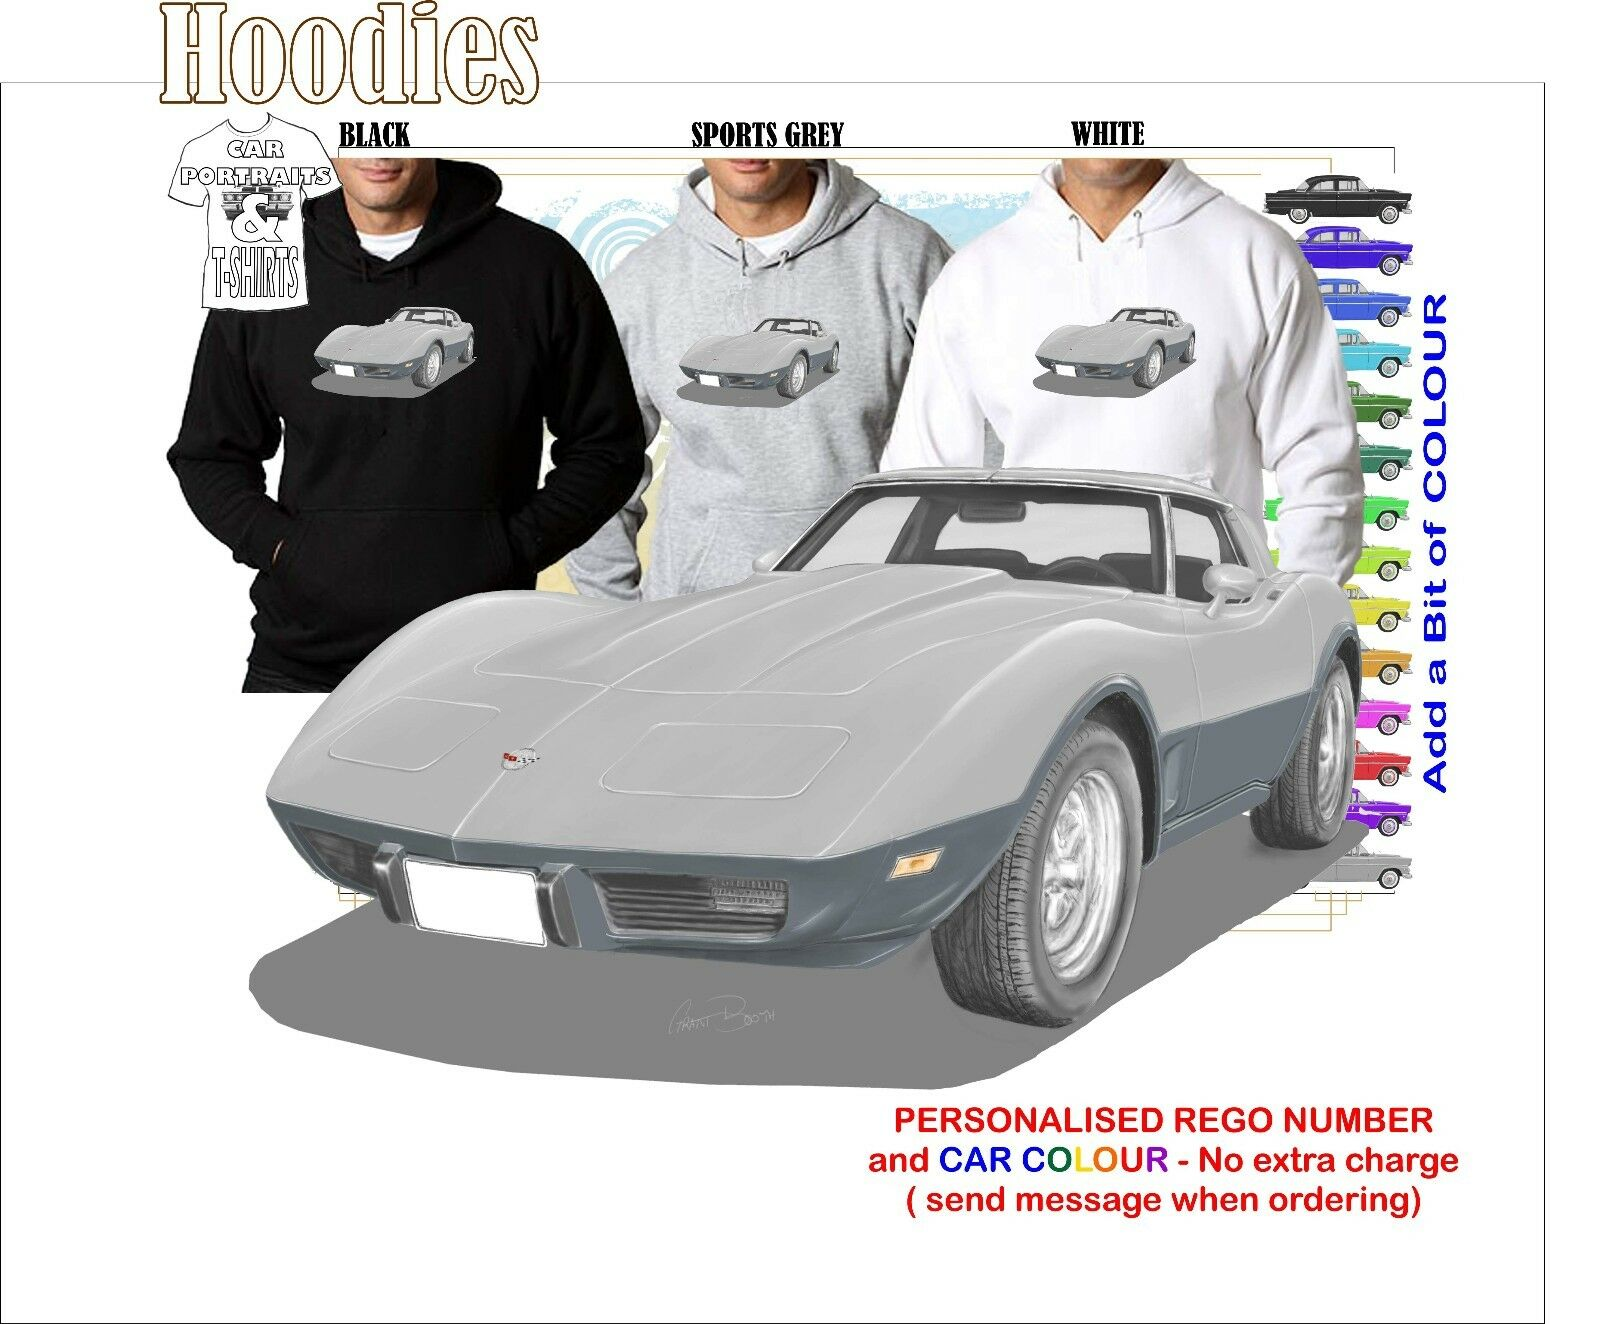 78 CORVETTE STINgrau 25 ANNIVERSARY HOODIE ILLUSTRATED CLASSIC RETRO MUSCLE CAR